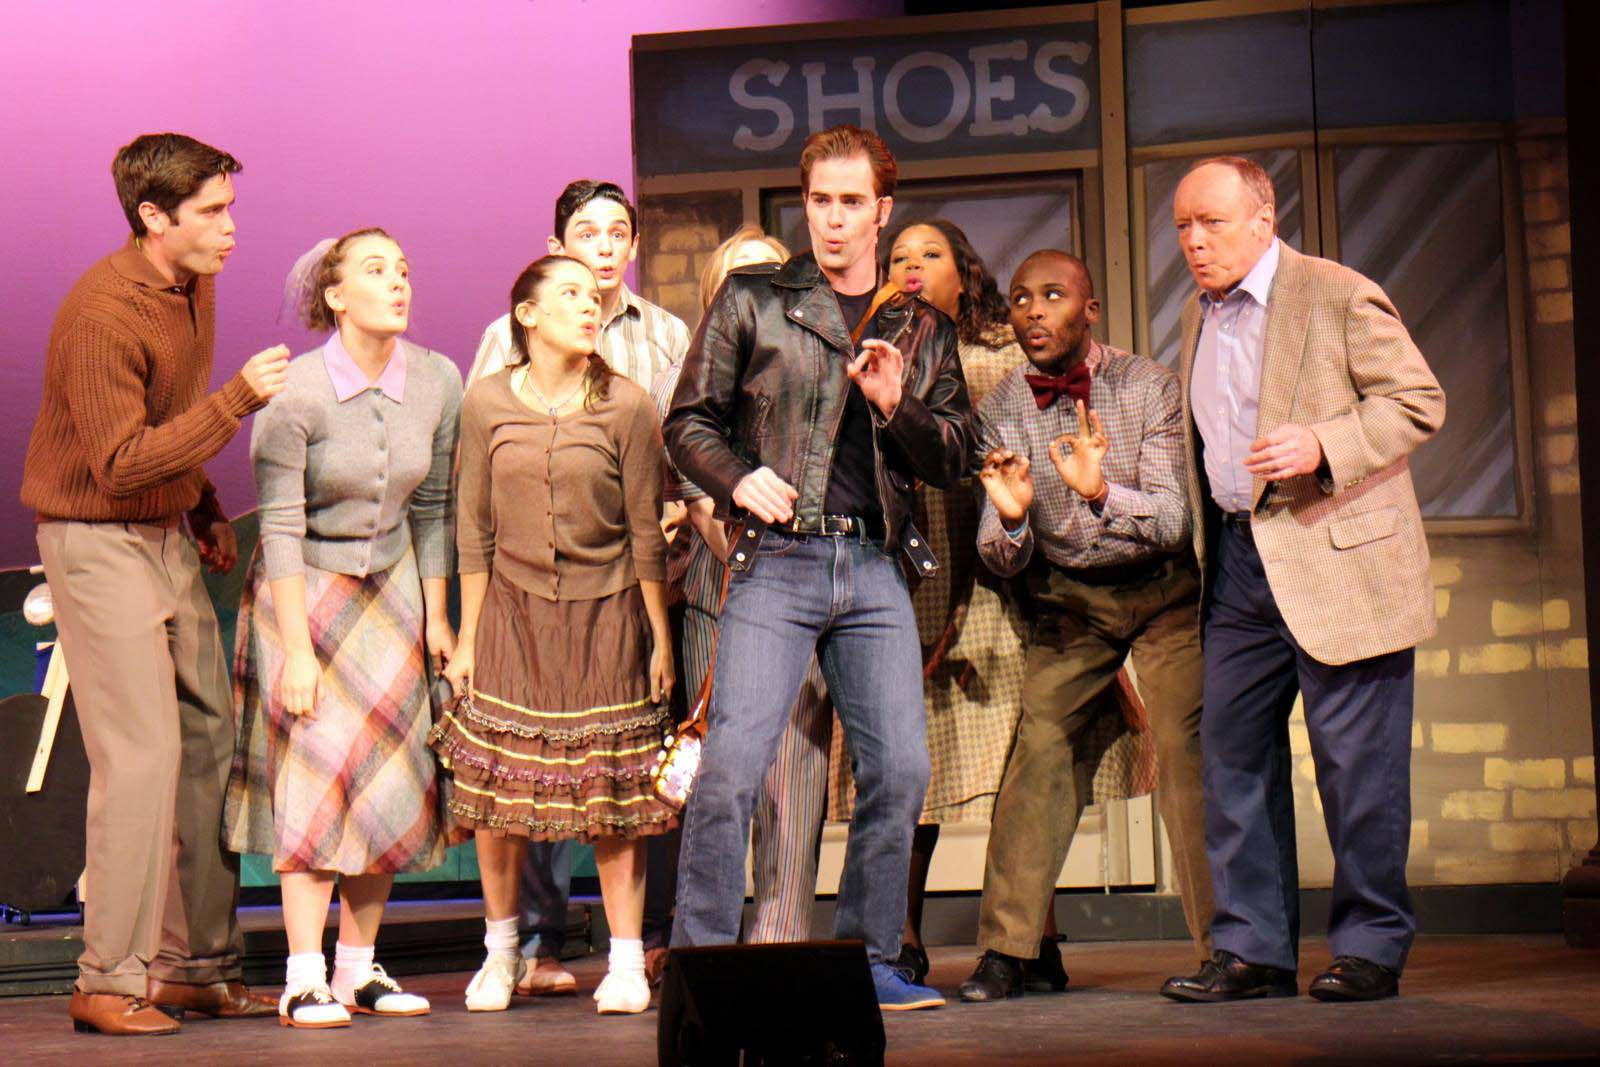 All Shook Up Broadway @ Palace Theatre - Tickets and Discounts